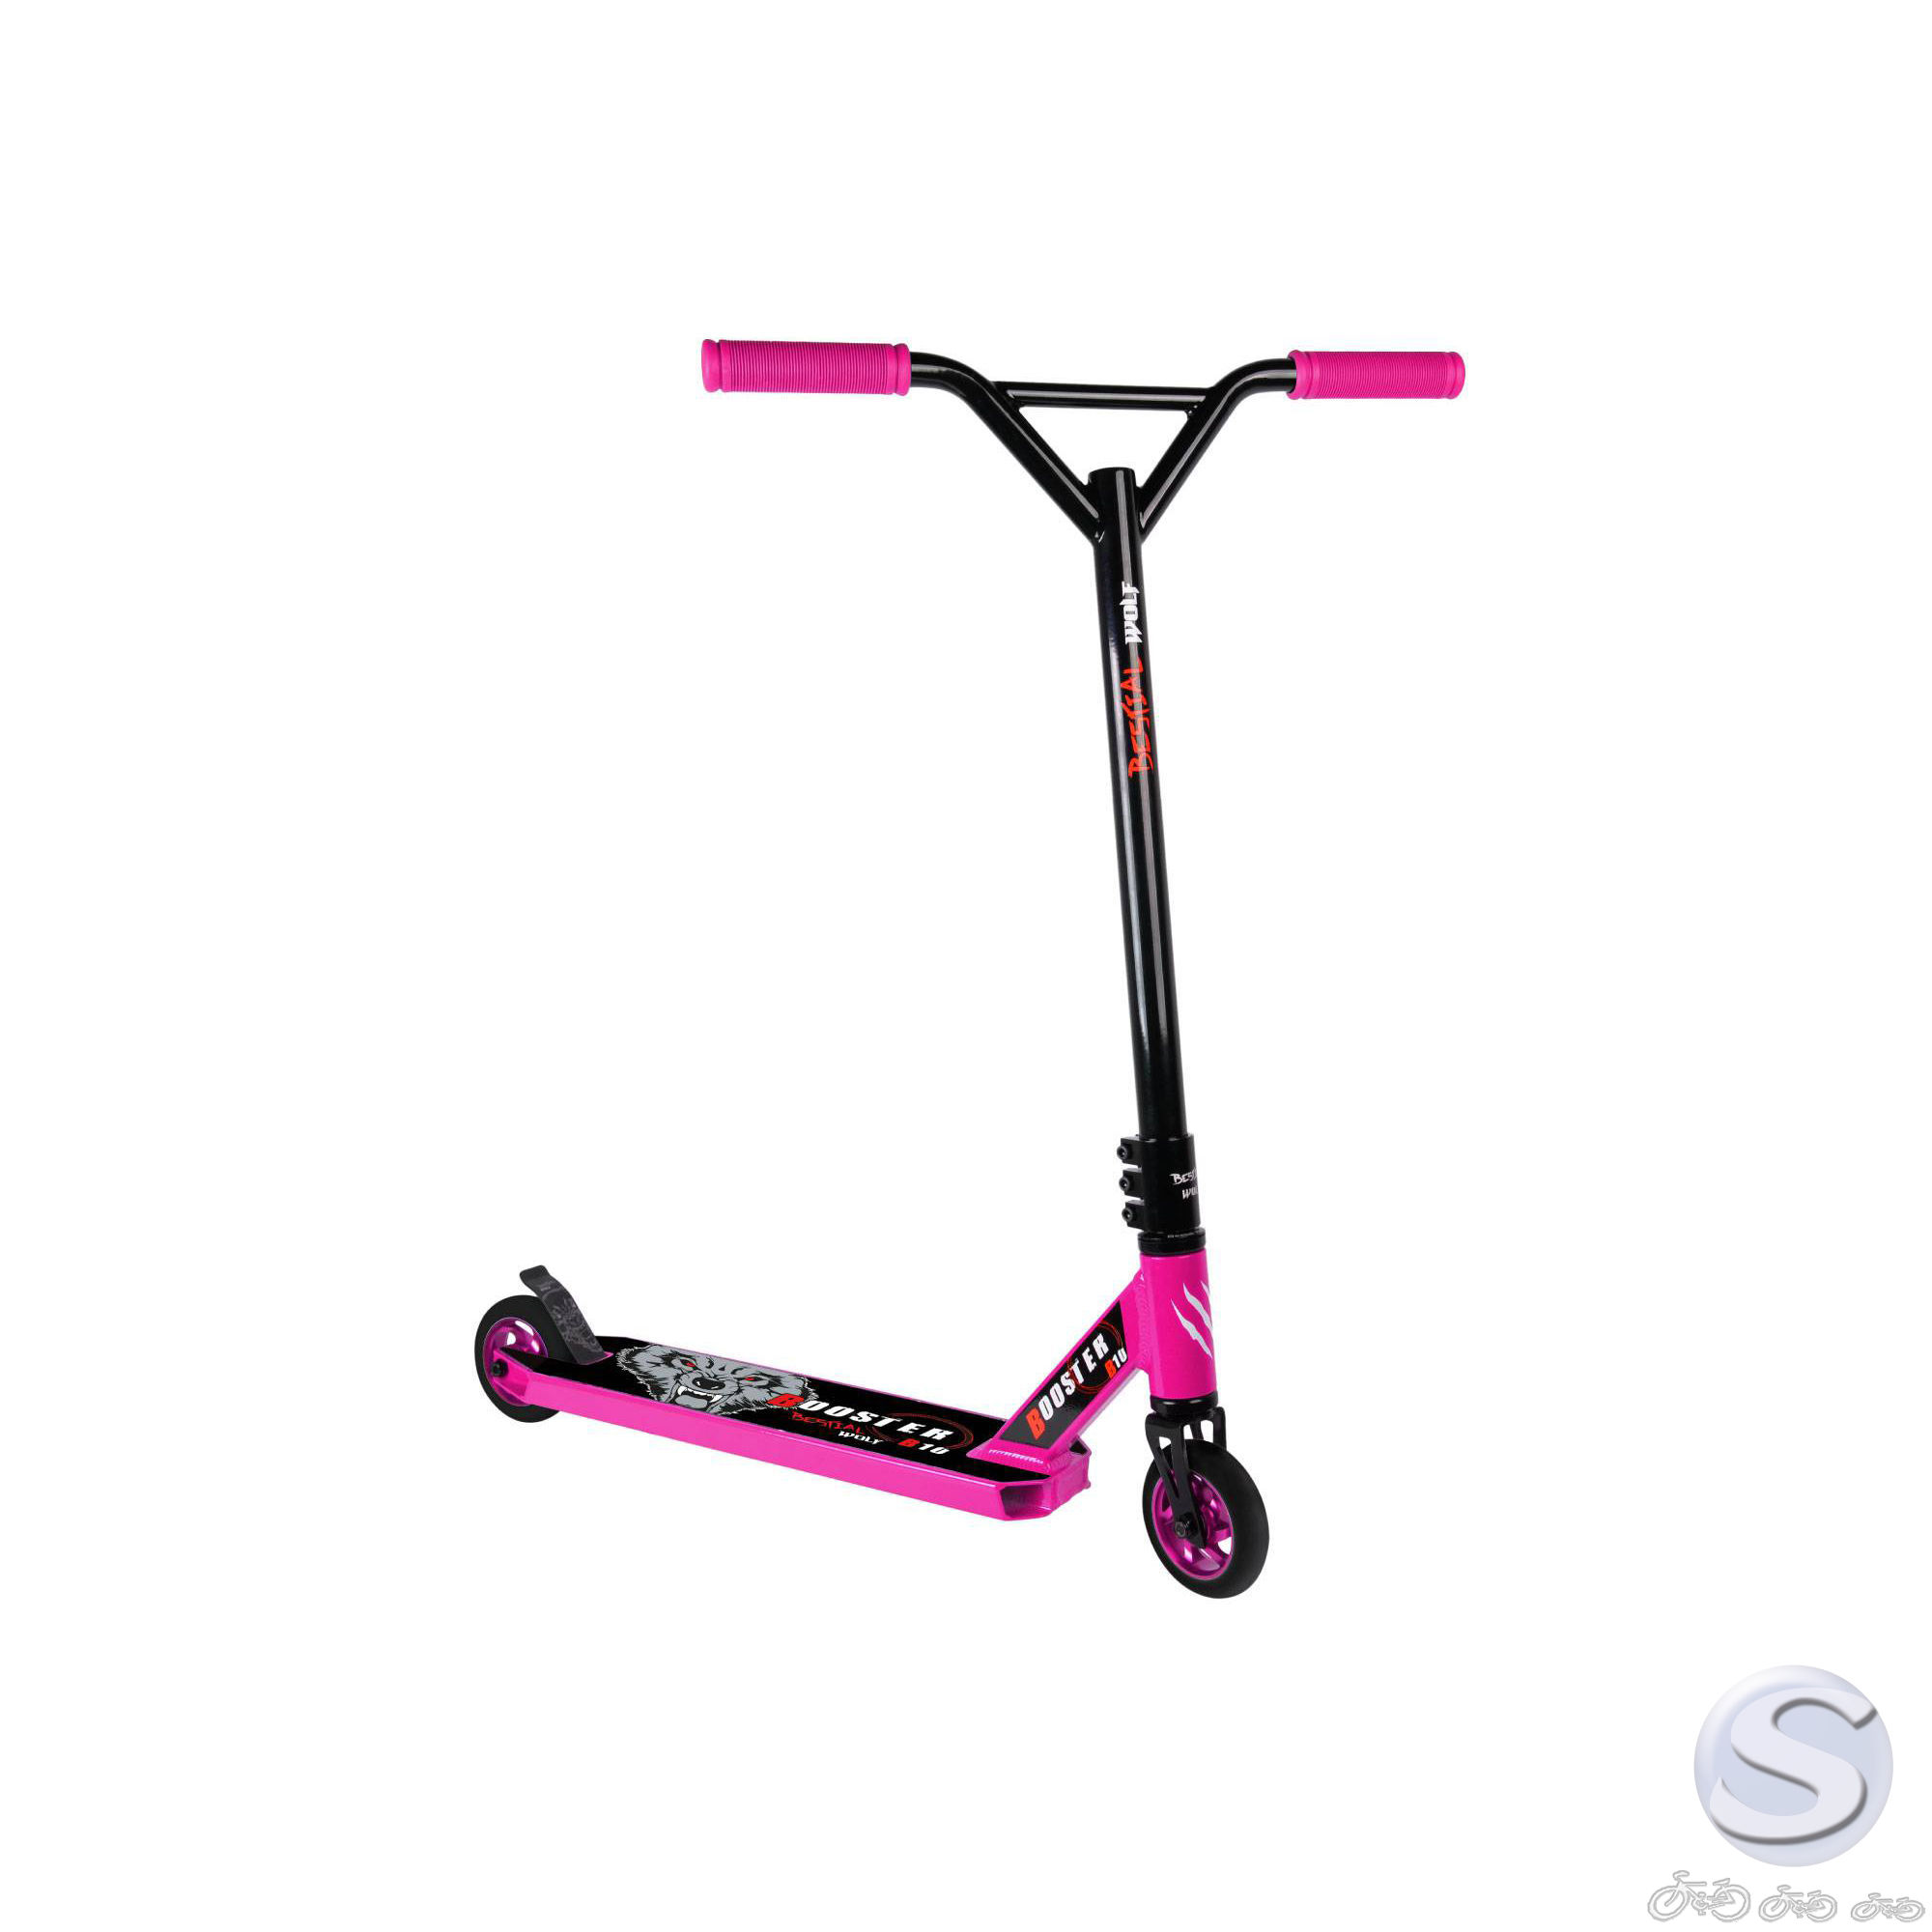 Patinete Scooter Bestial Wolf Booster B10 en varios colores